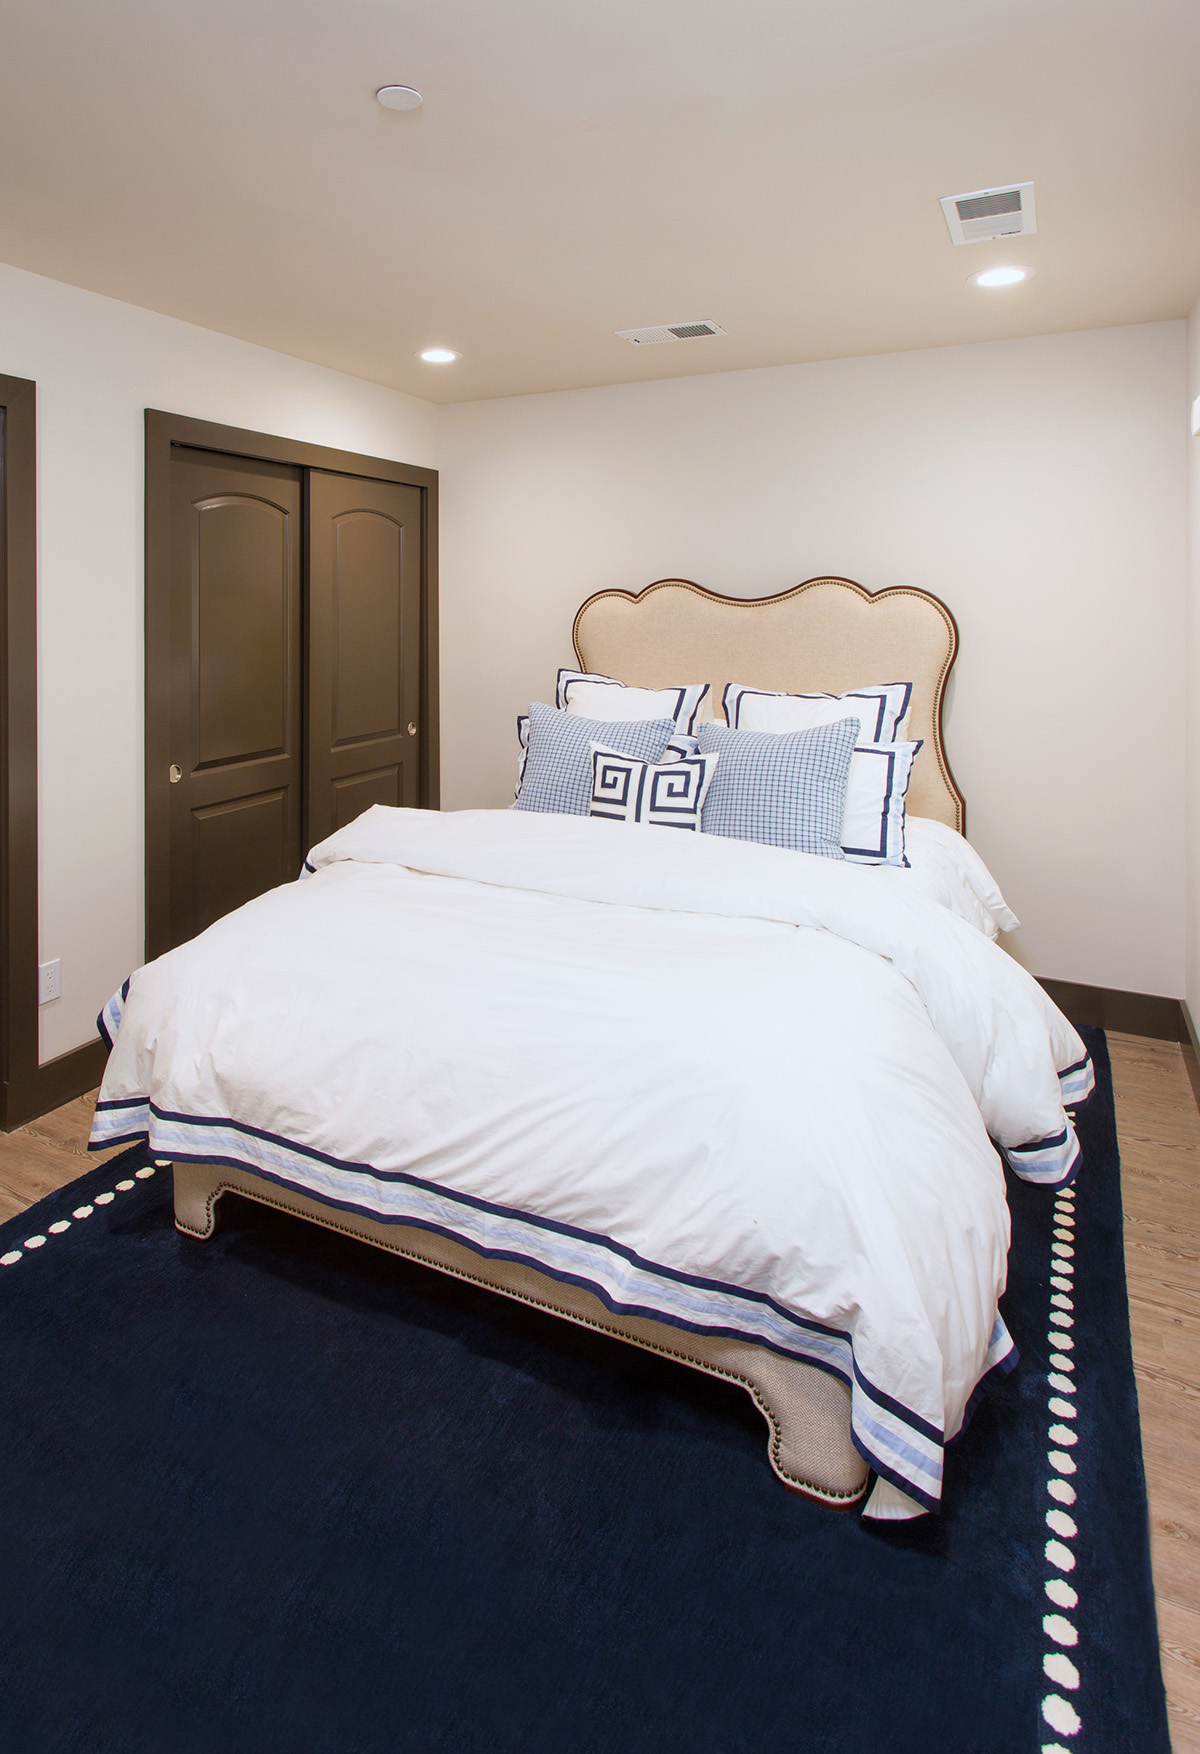 guest-bedroom-interior-design-los-altos-california-ktj-design-co-2.jpg